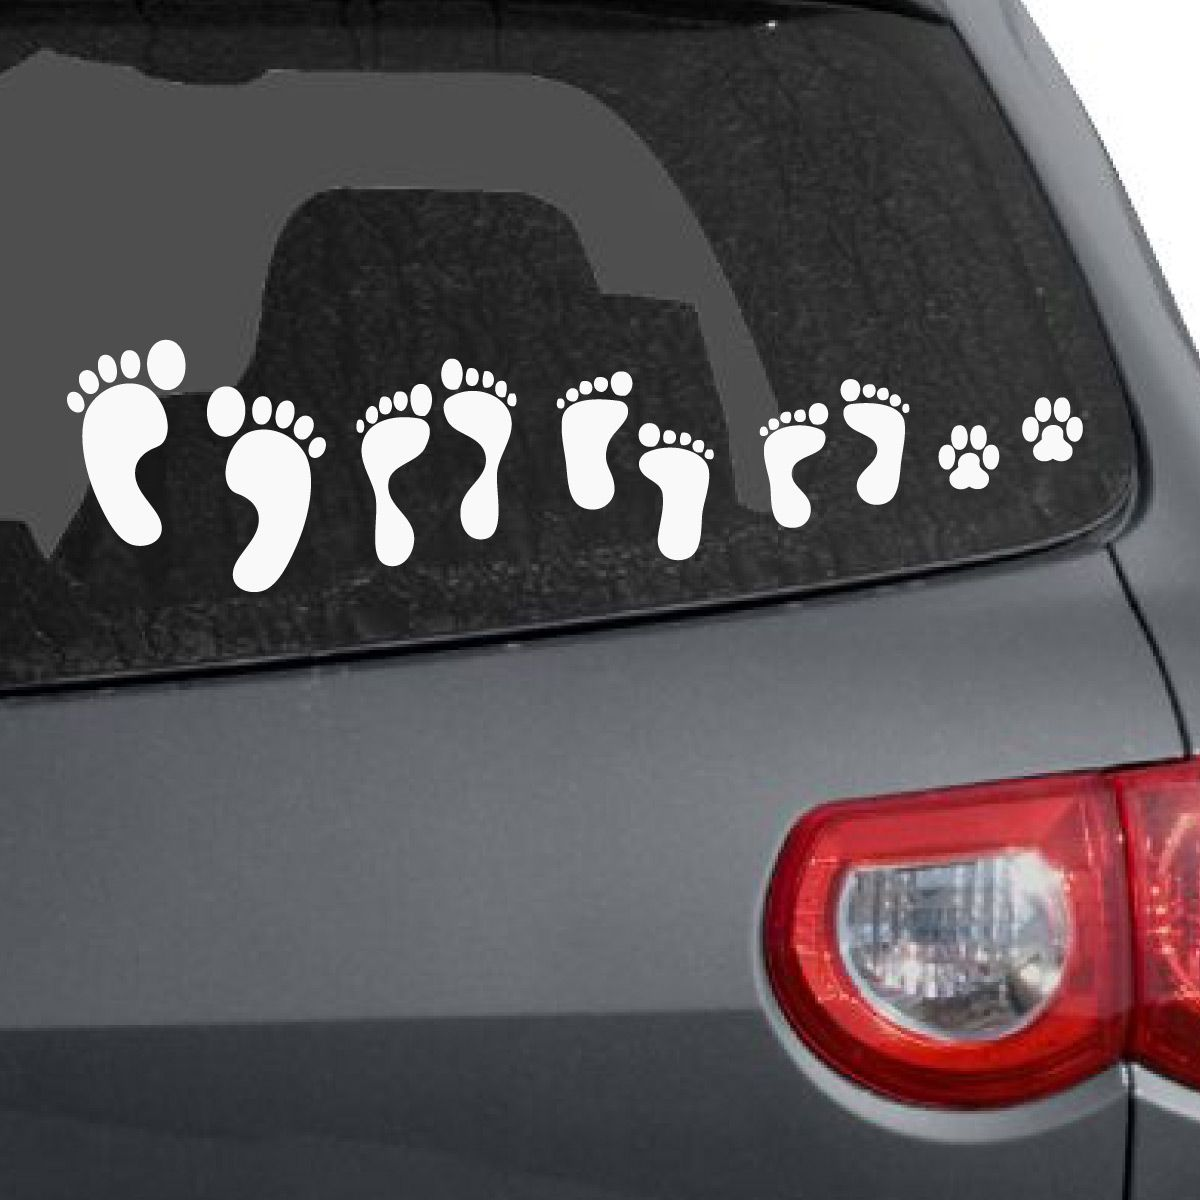 Foot Print Family Car Decal Family Car Decals Family Car Stickers Family Car [ 1200 x 1200 Pixel ]